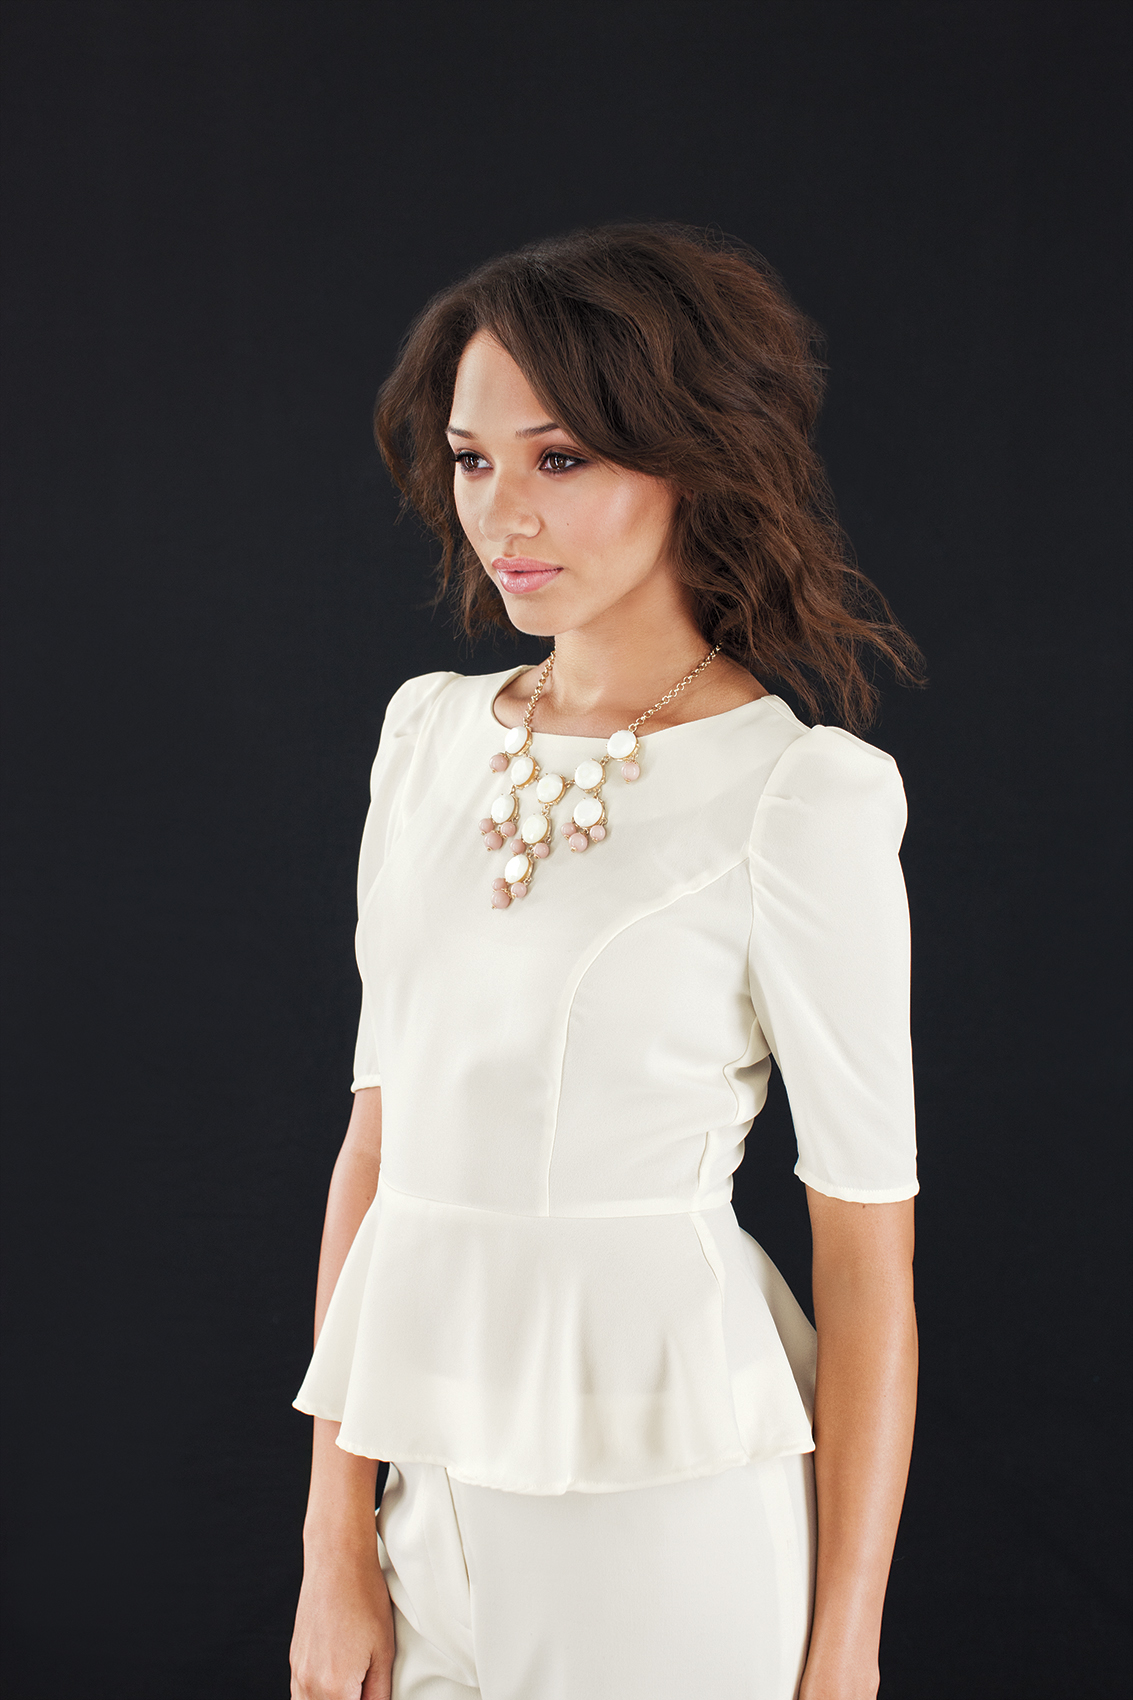 Model wearing white top and costume jewelry